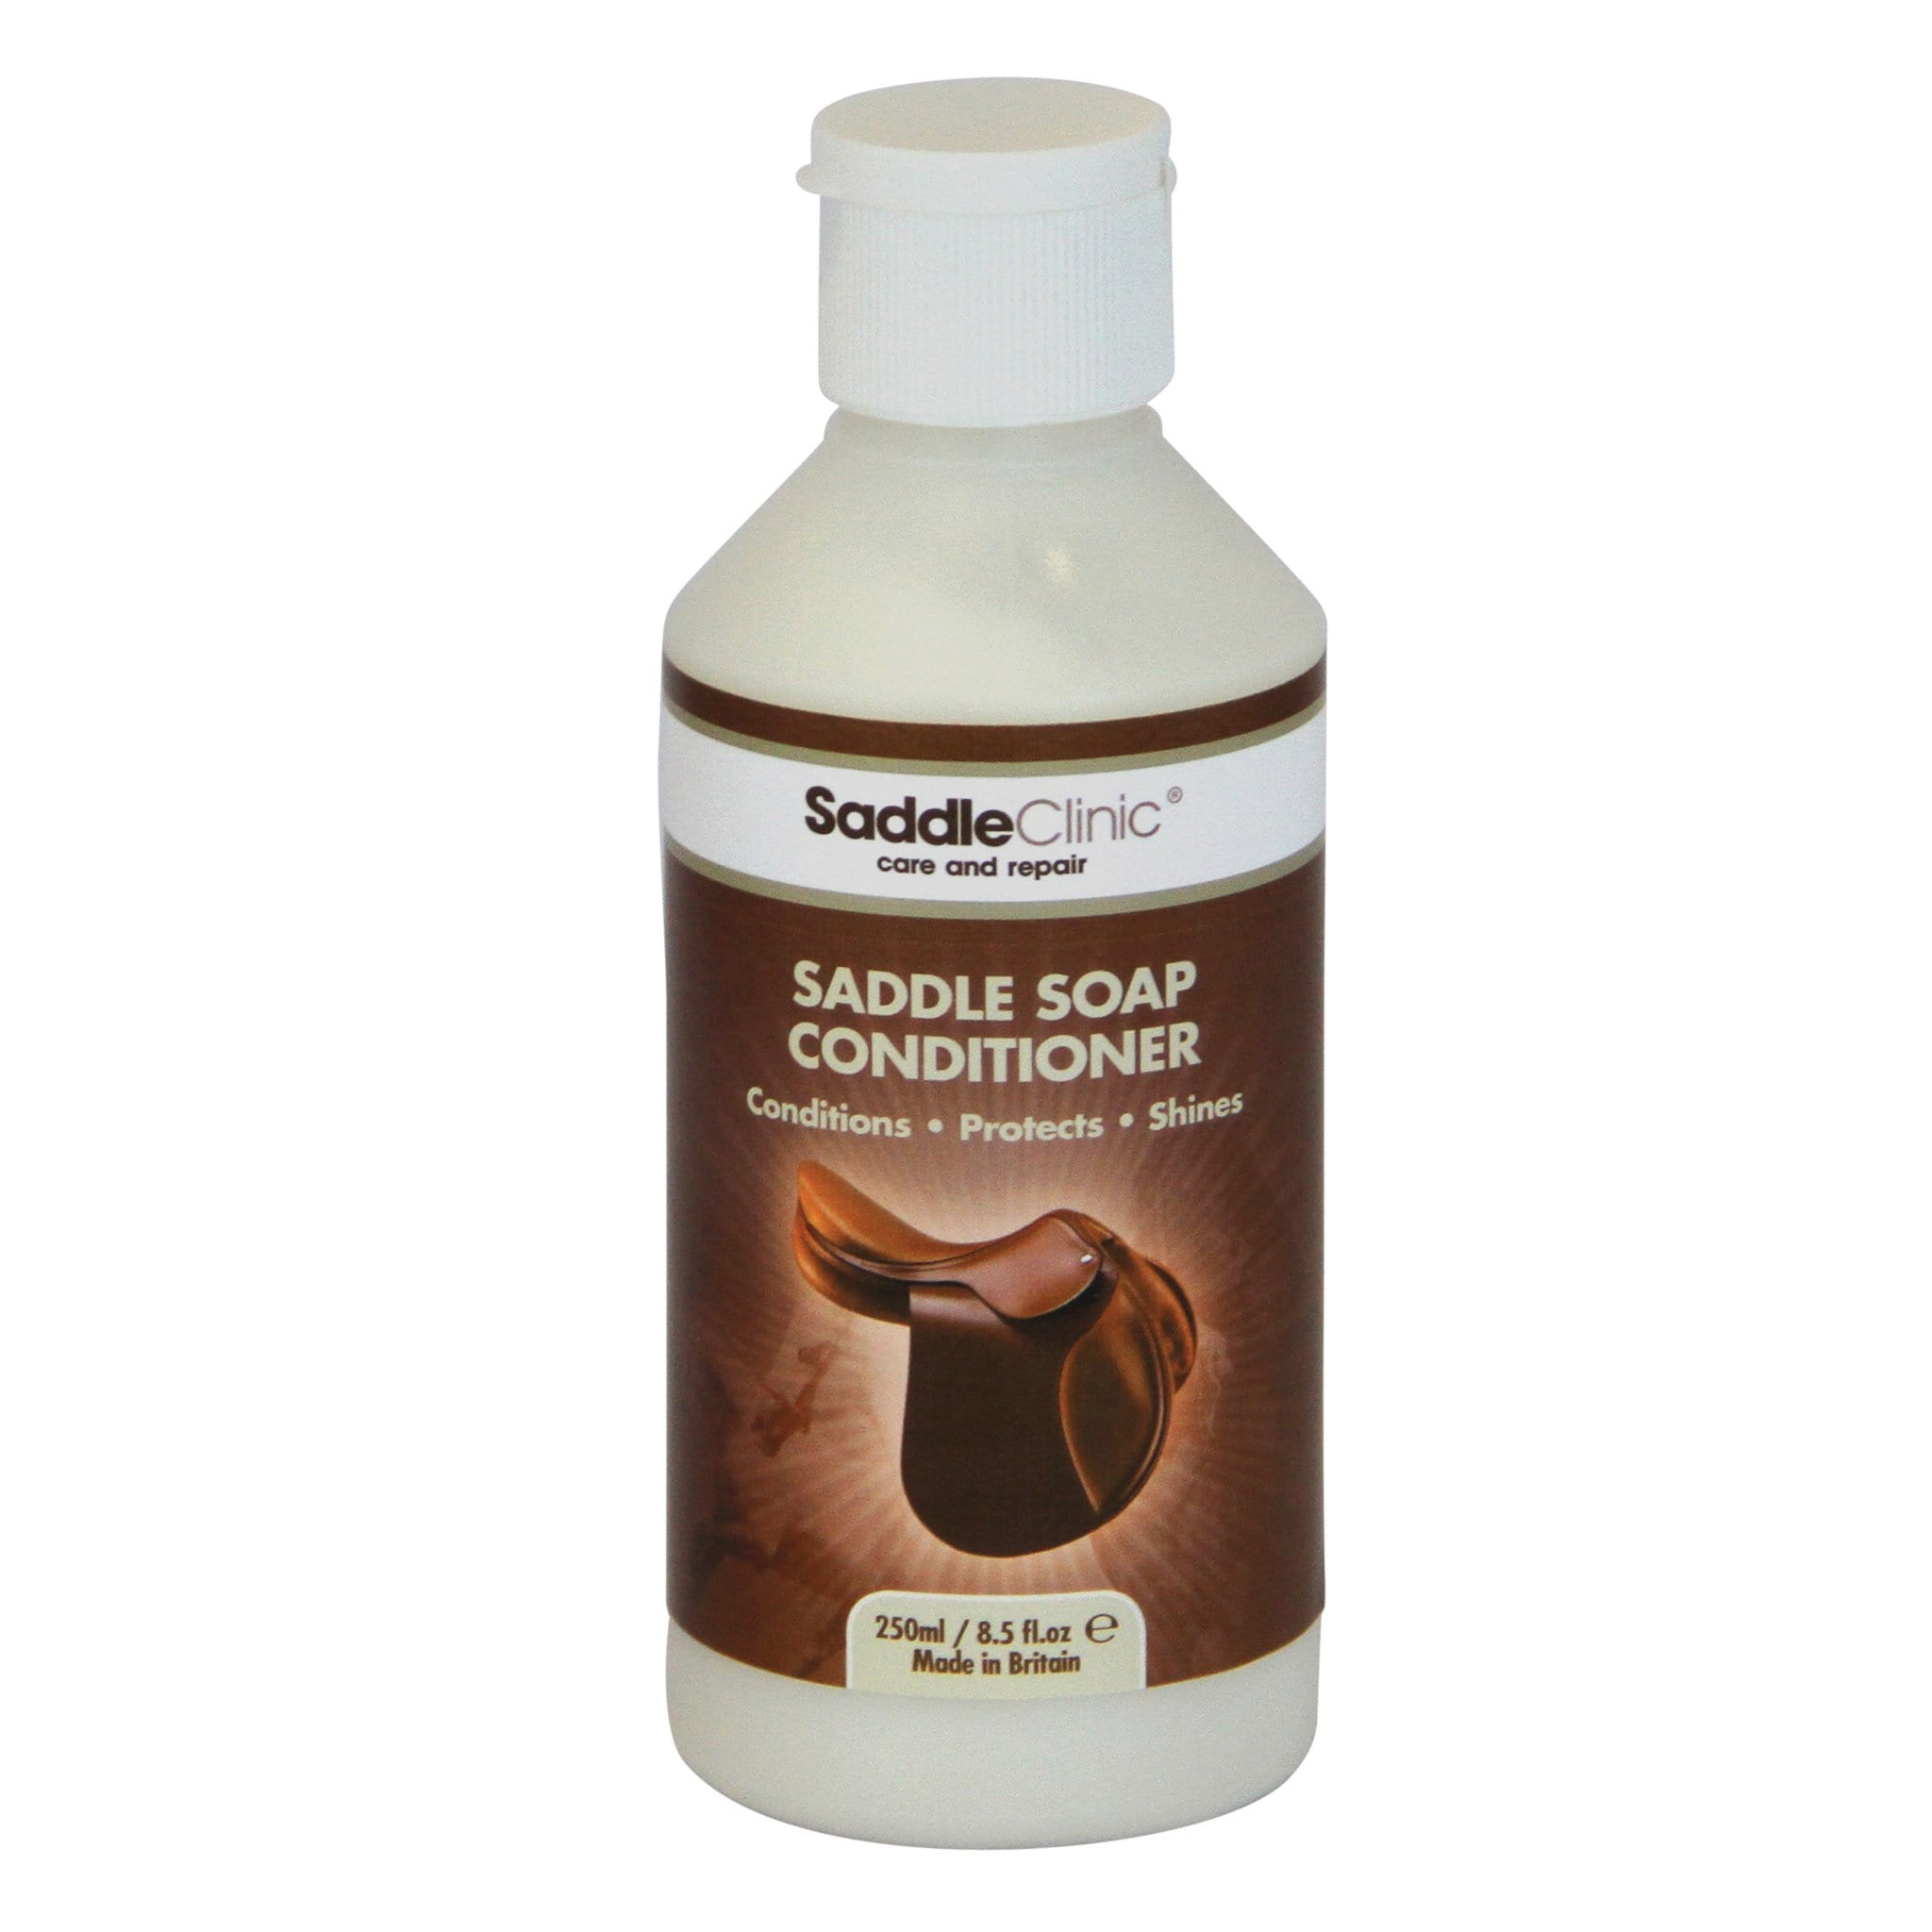 Saddle Clinic Saddle Soap Conditioner 250ml 5386